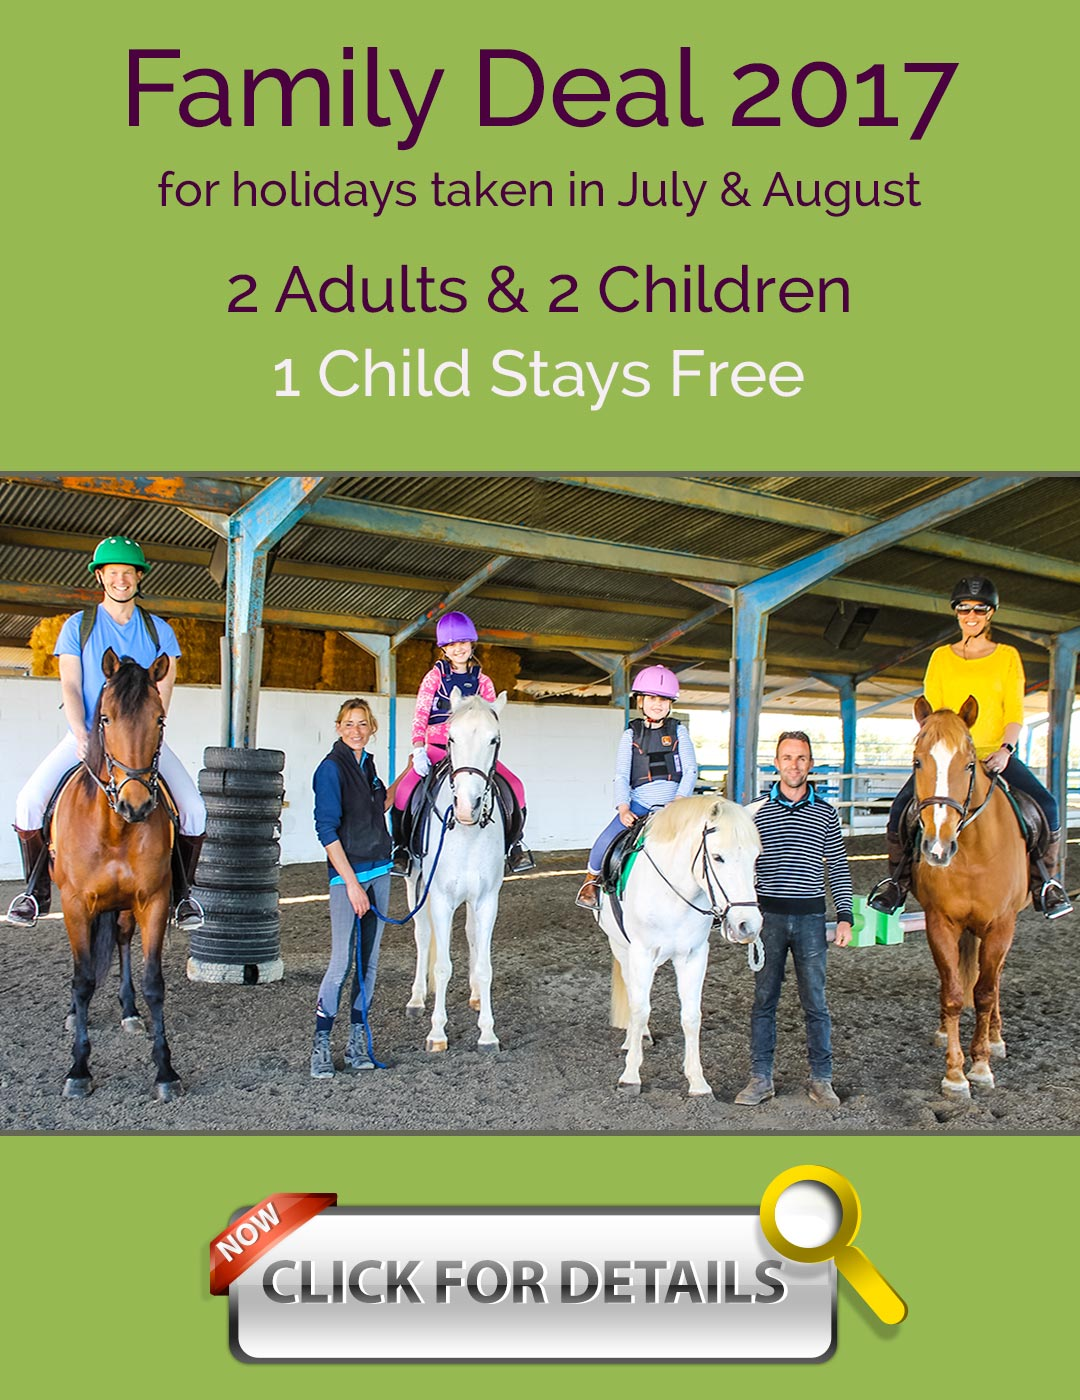 horse-riding-holiday-family-deal-spain-2017